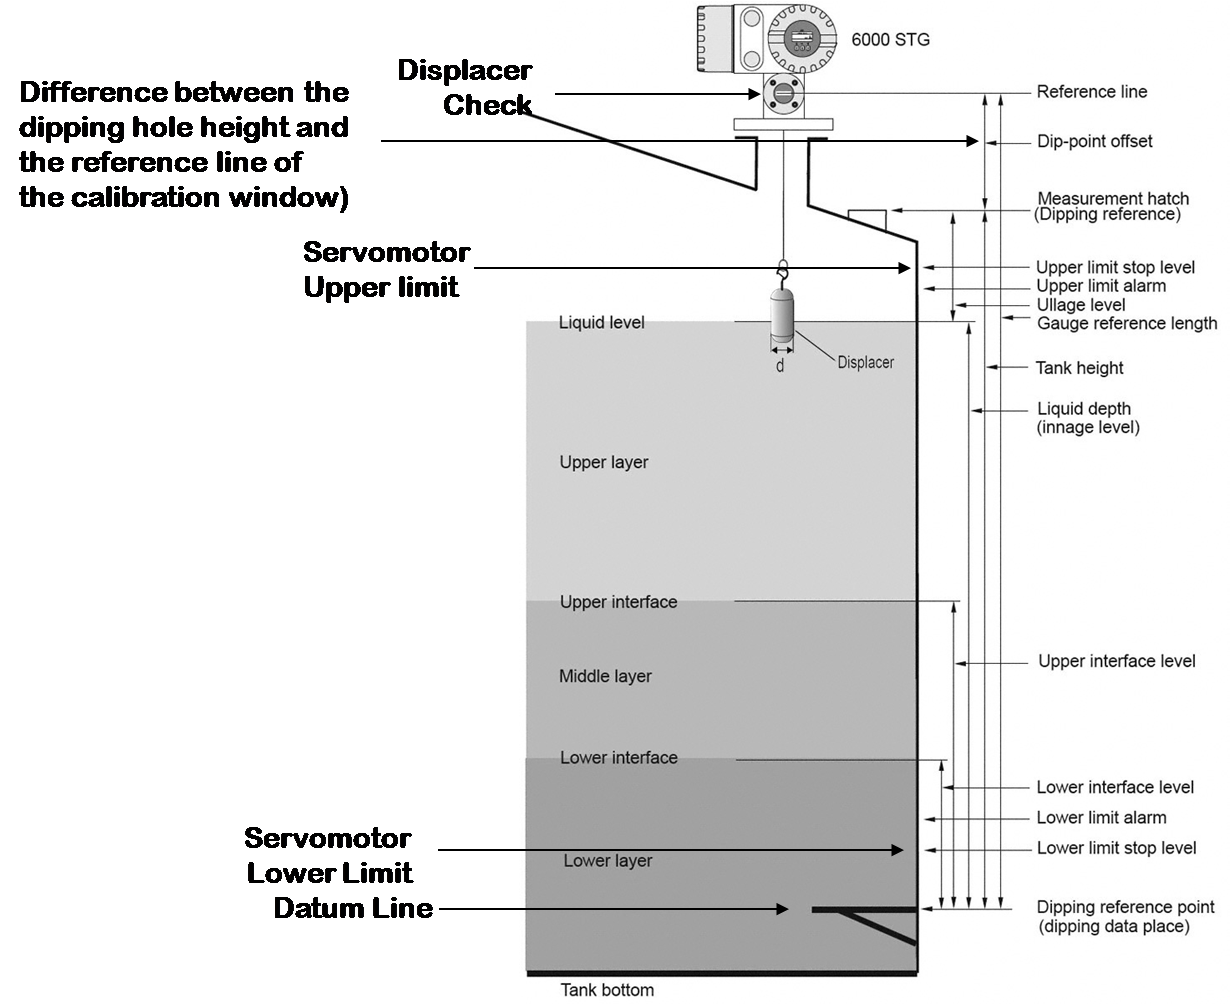 Level Measurement Wiring Diagram For Liquid Switches Rises The Servo Motor Drives Measuring Drum To Wind Up Wire Until Displacer Is Again Partly Immersed In